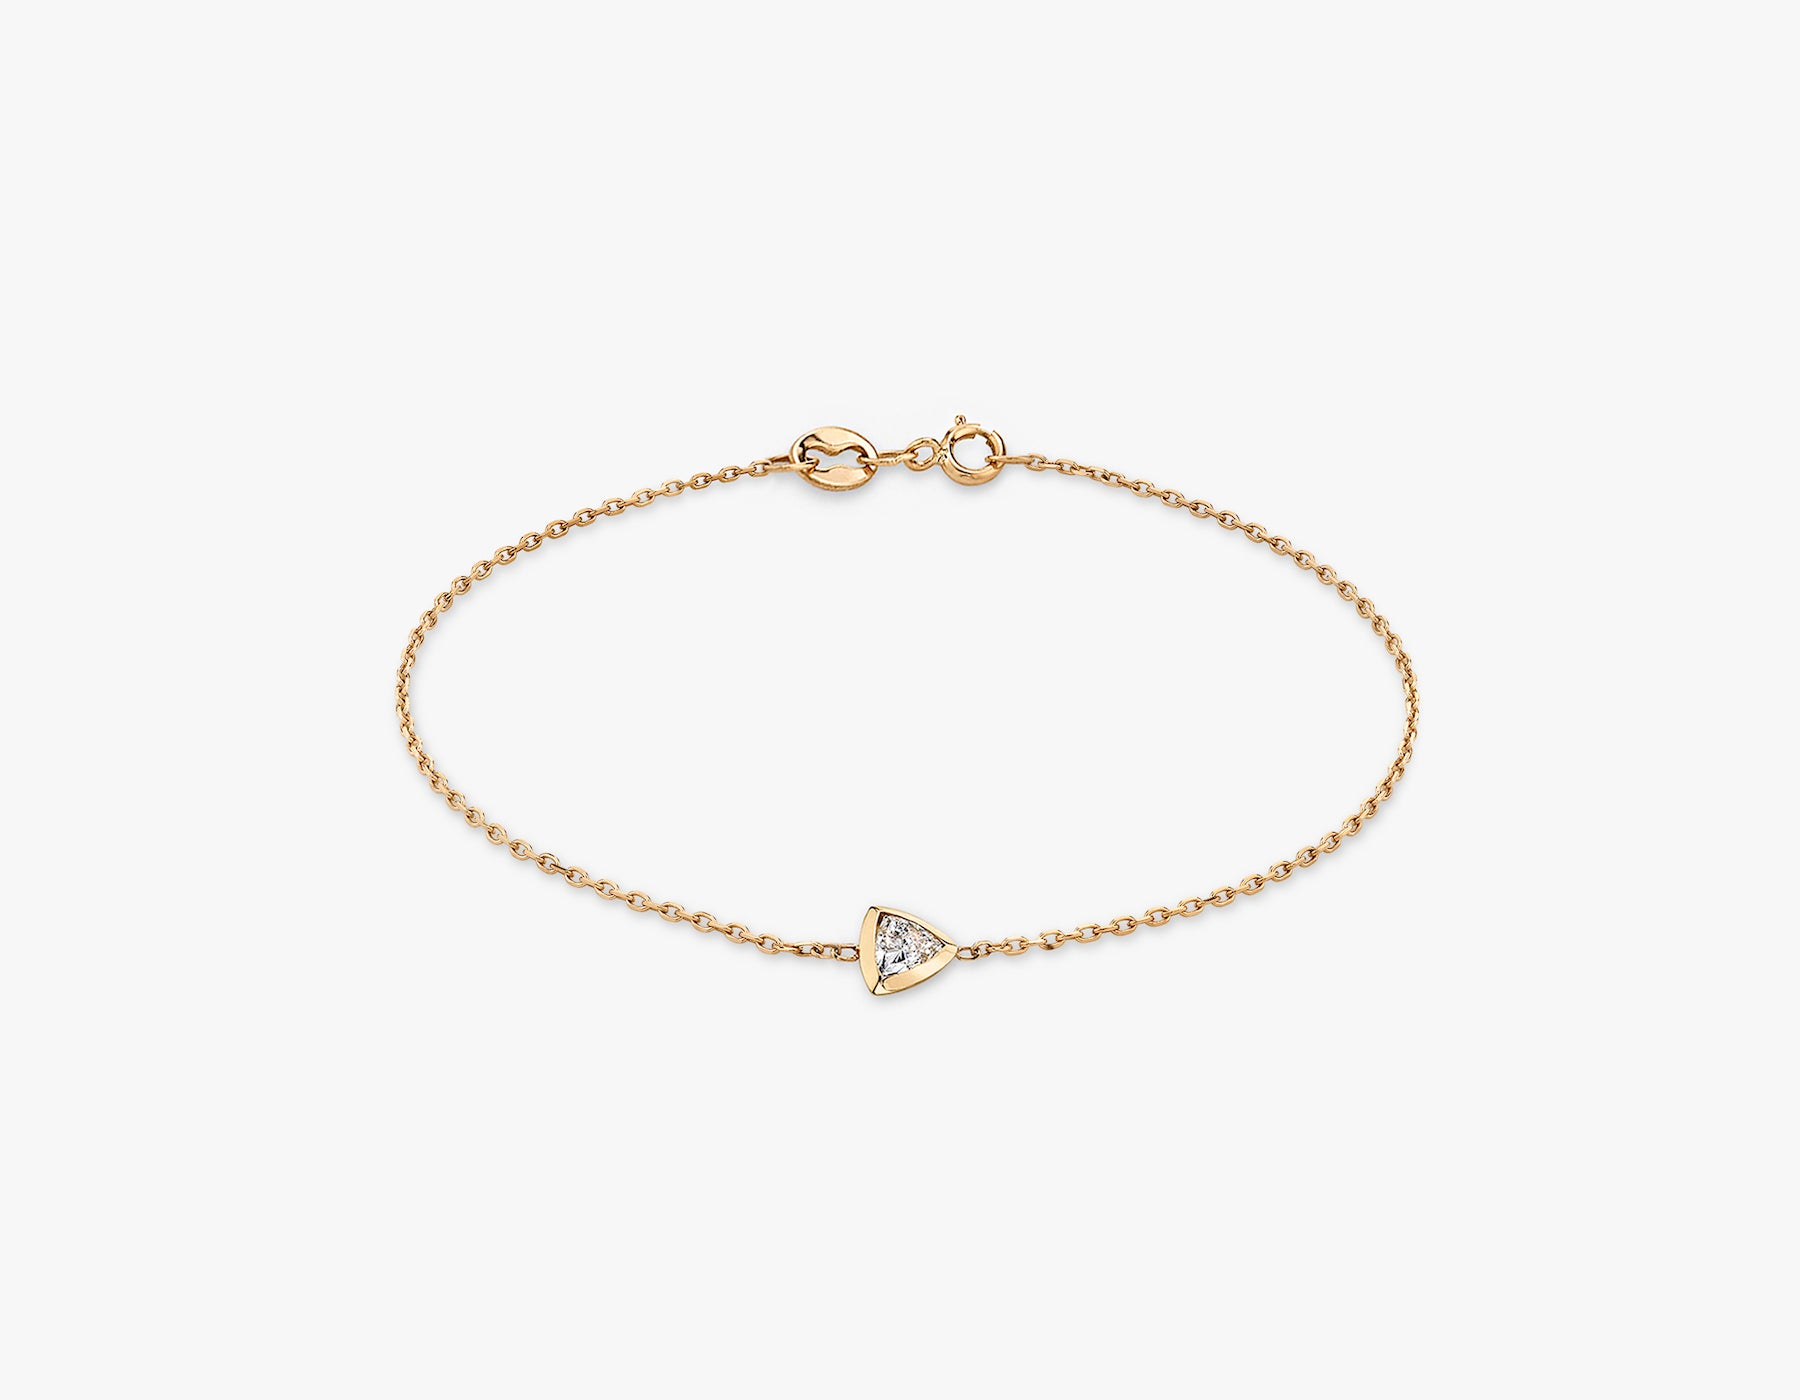 Vrai simple minimalist Trillion Diamond Bezel Bracelet, 14K Rose Gold